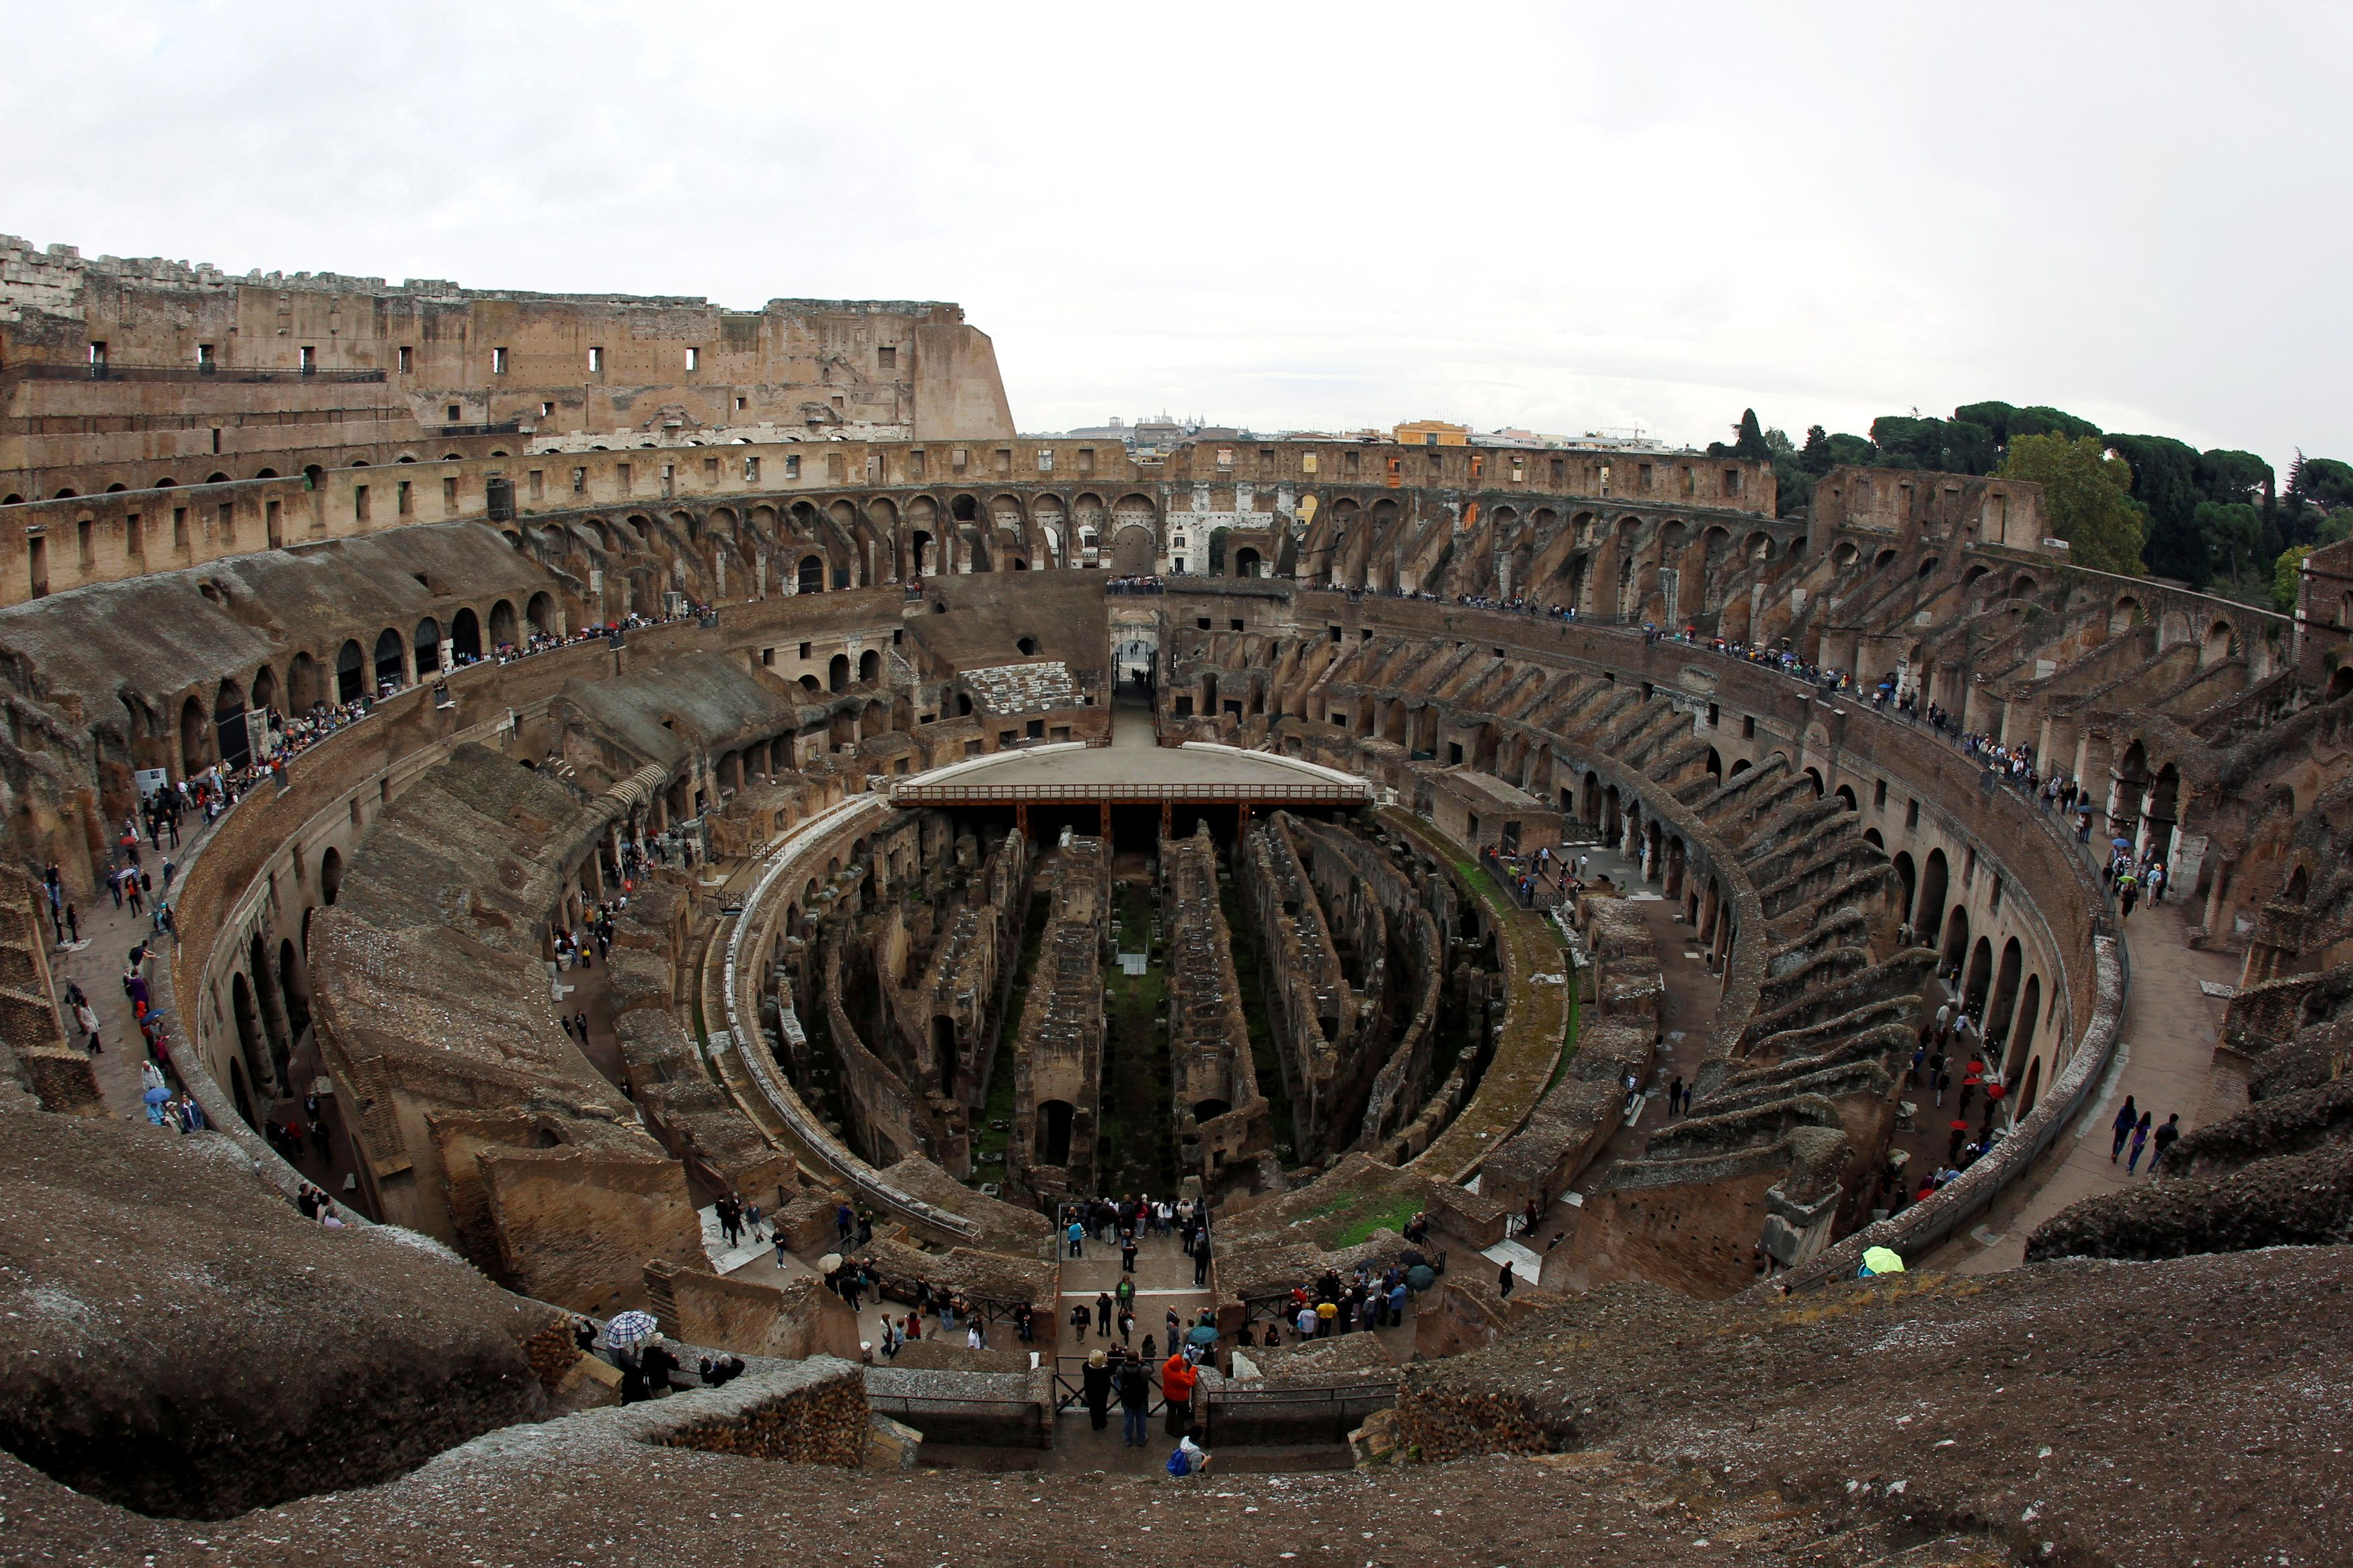 People visit Rome's ancient Colosseum, Oct. 14, 2010. REUTERS/Alessandro Bianchi